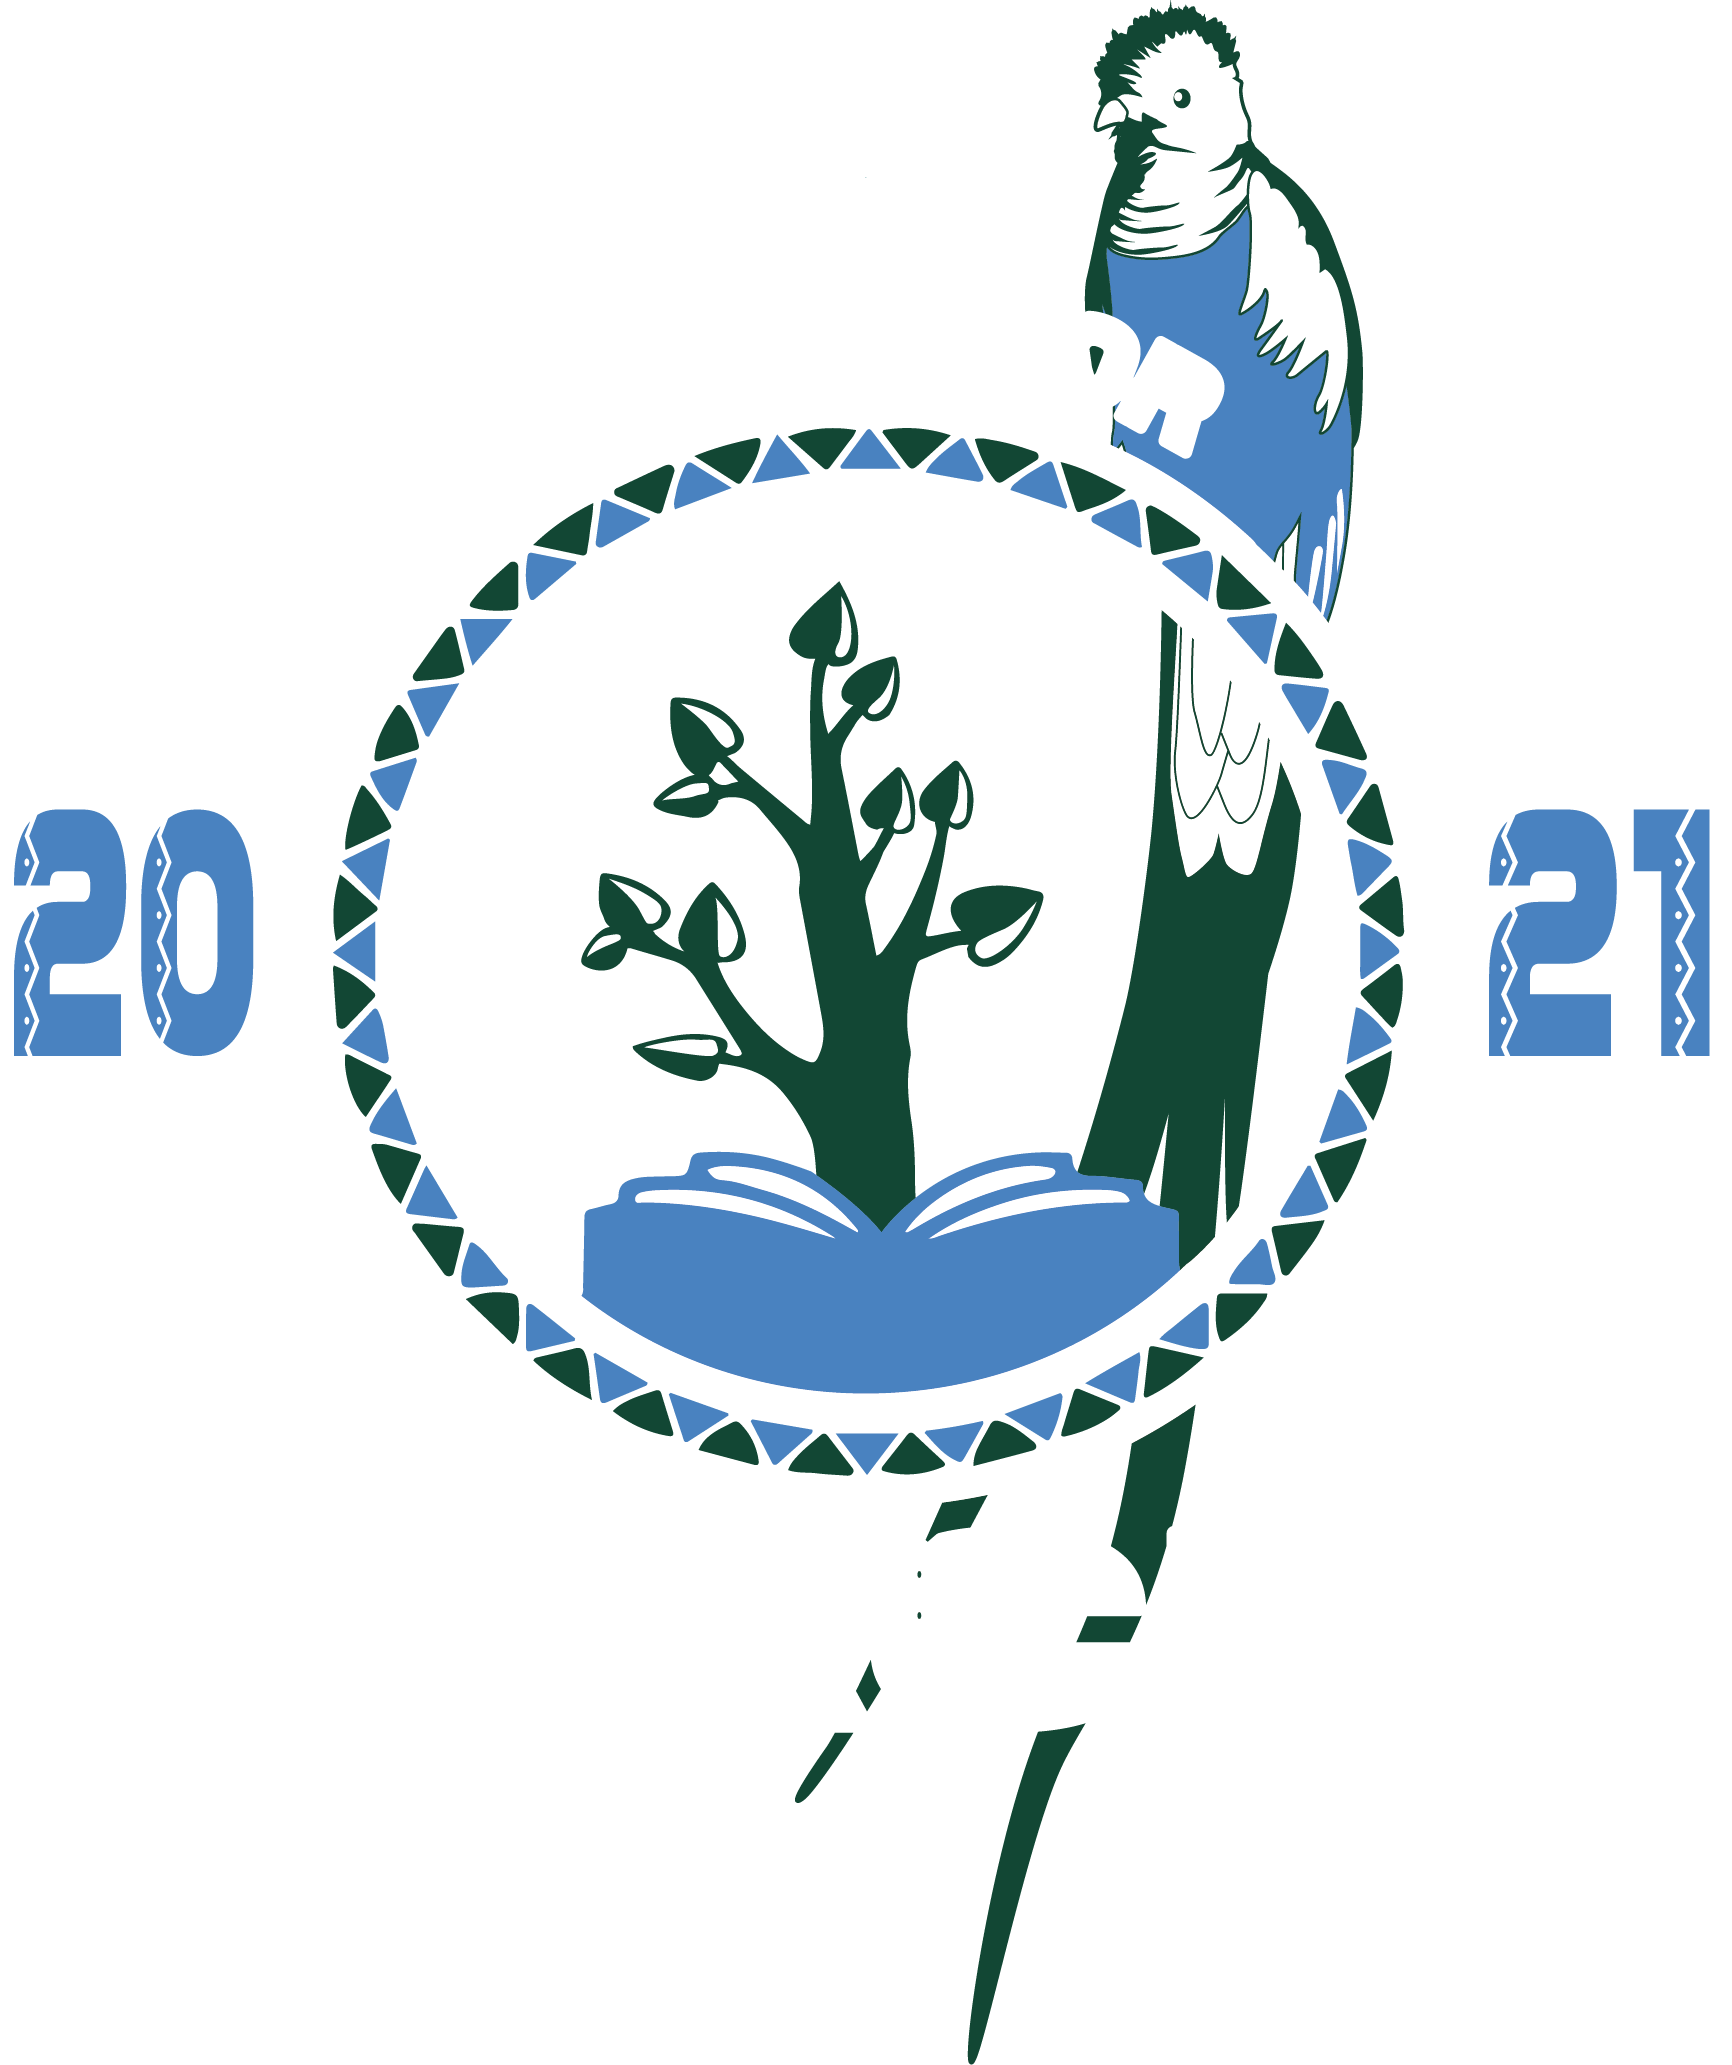 Racing for GRACES logo